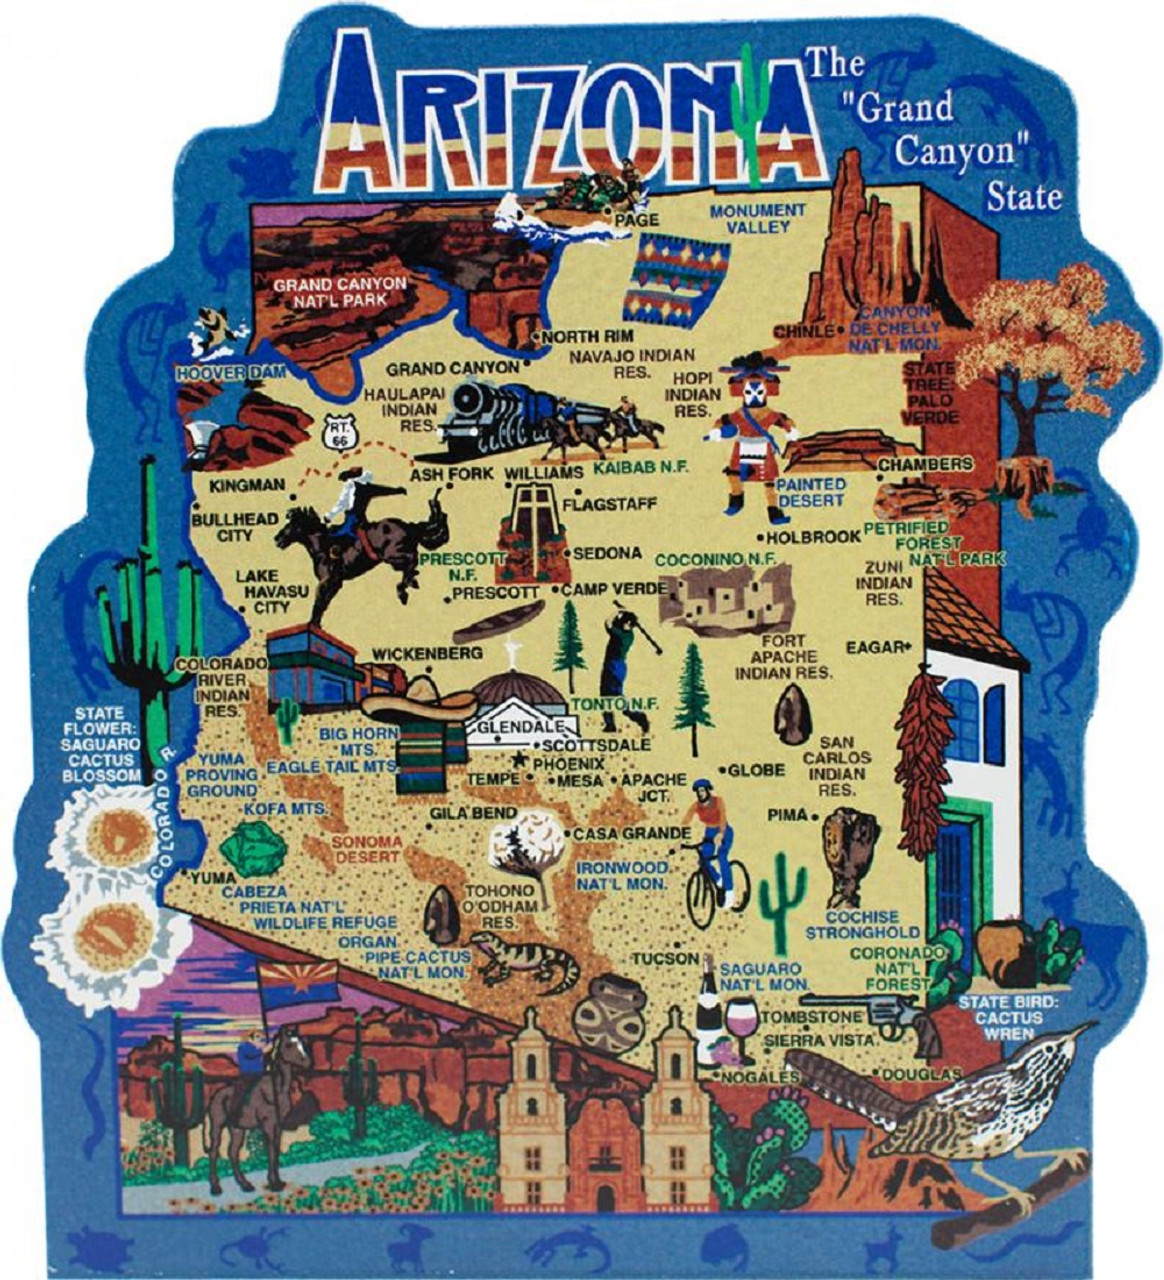 Arizona Points Of Interest Map.United States Map Arizona Grand Canyon State